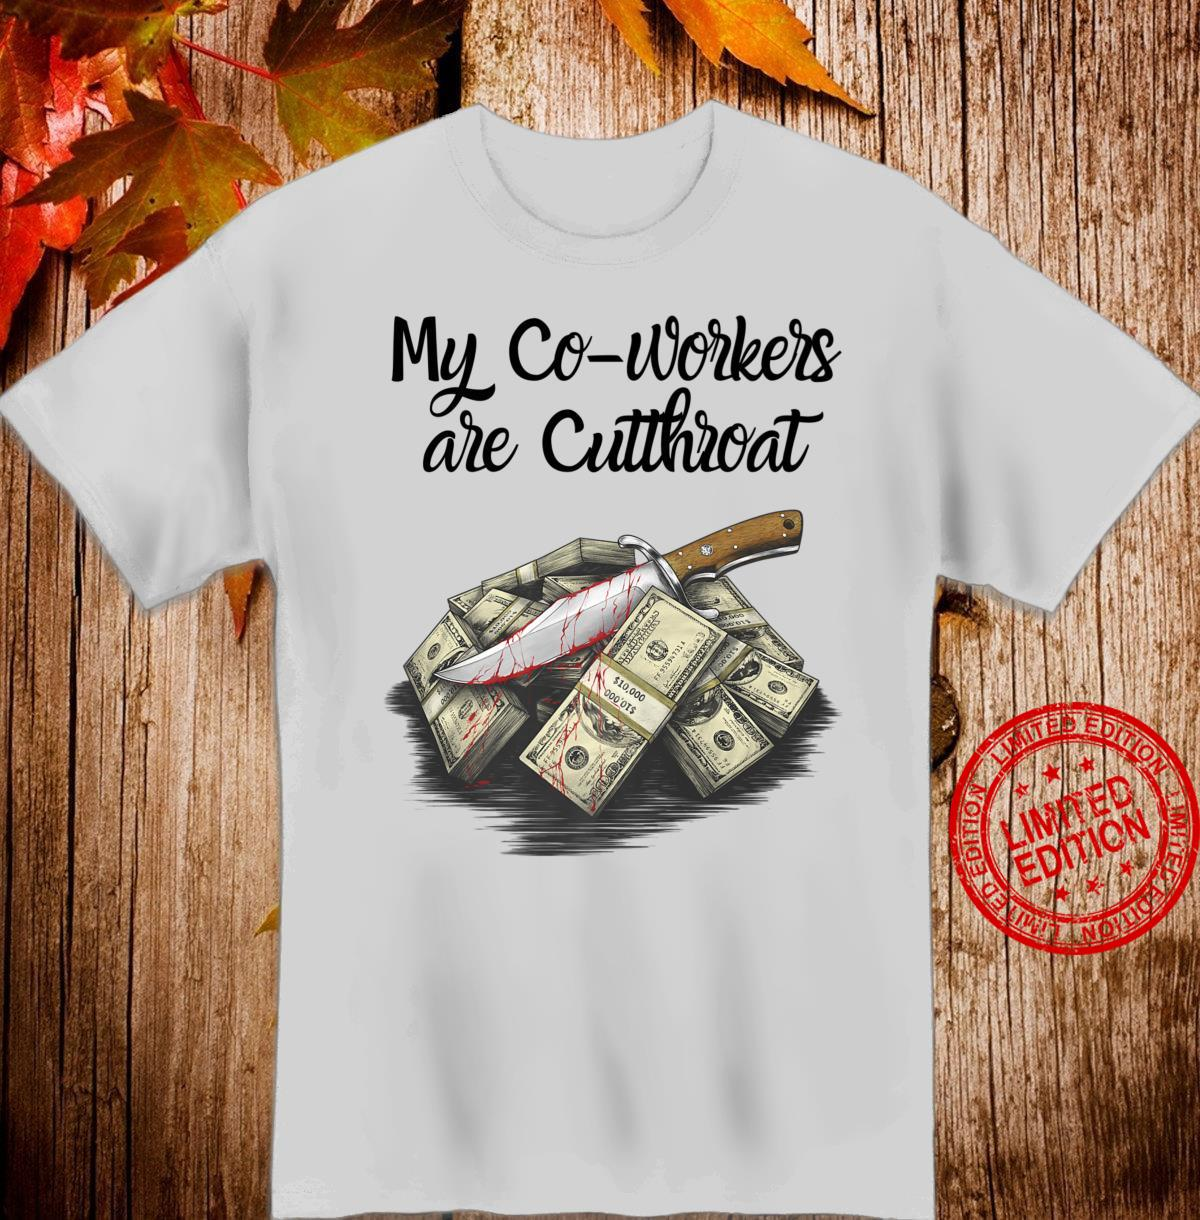 My Coworkers are Cutthroat Money Cash employment Work Job Shirt